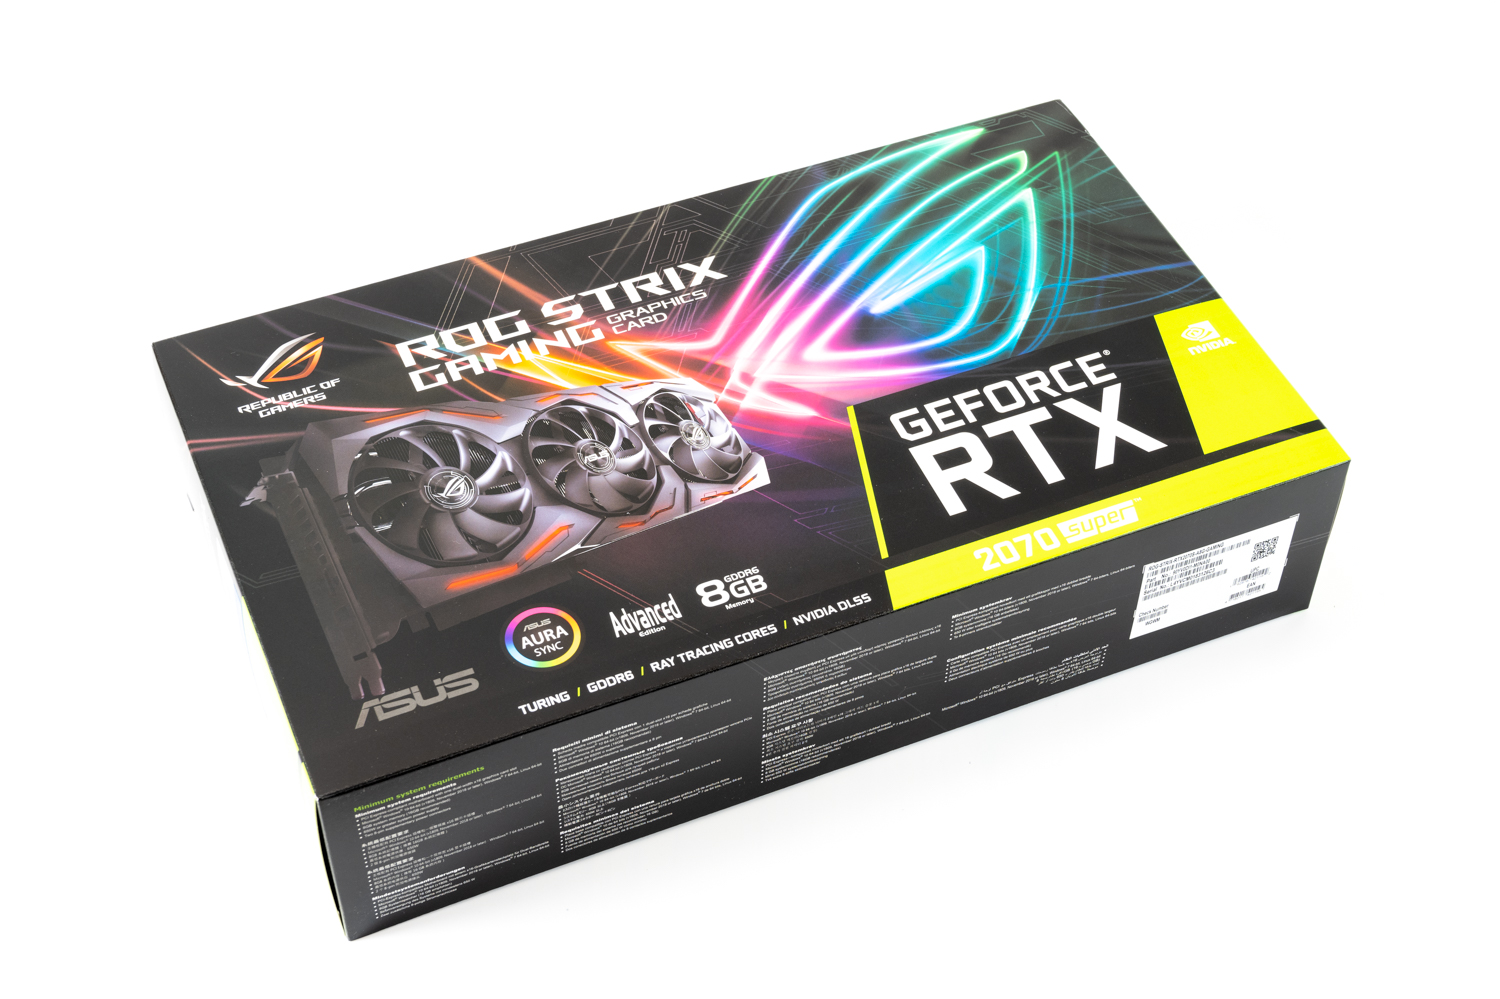 ASUS NVIDIA GEFORCE RTX 2070 SUPER